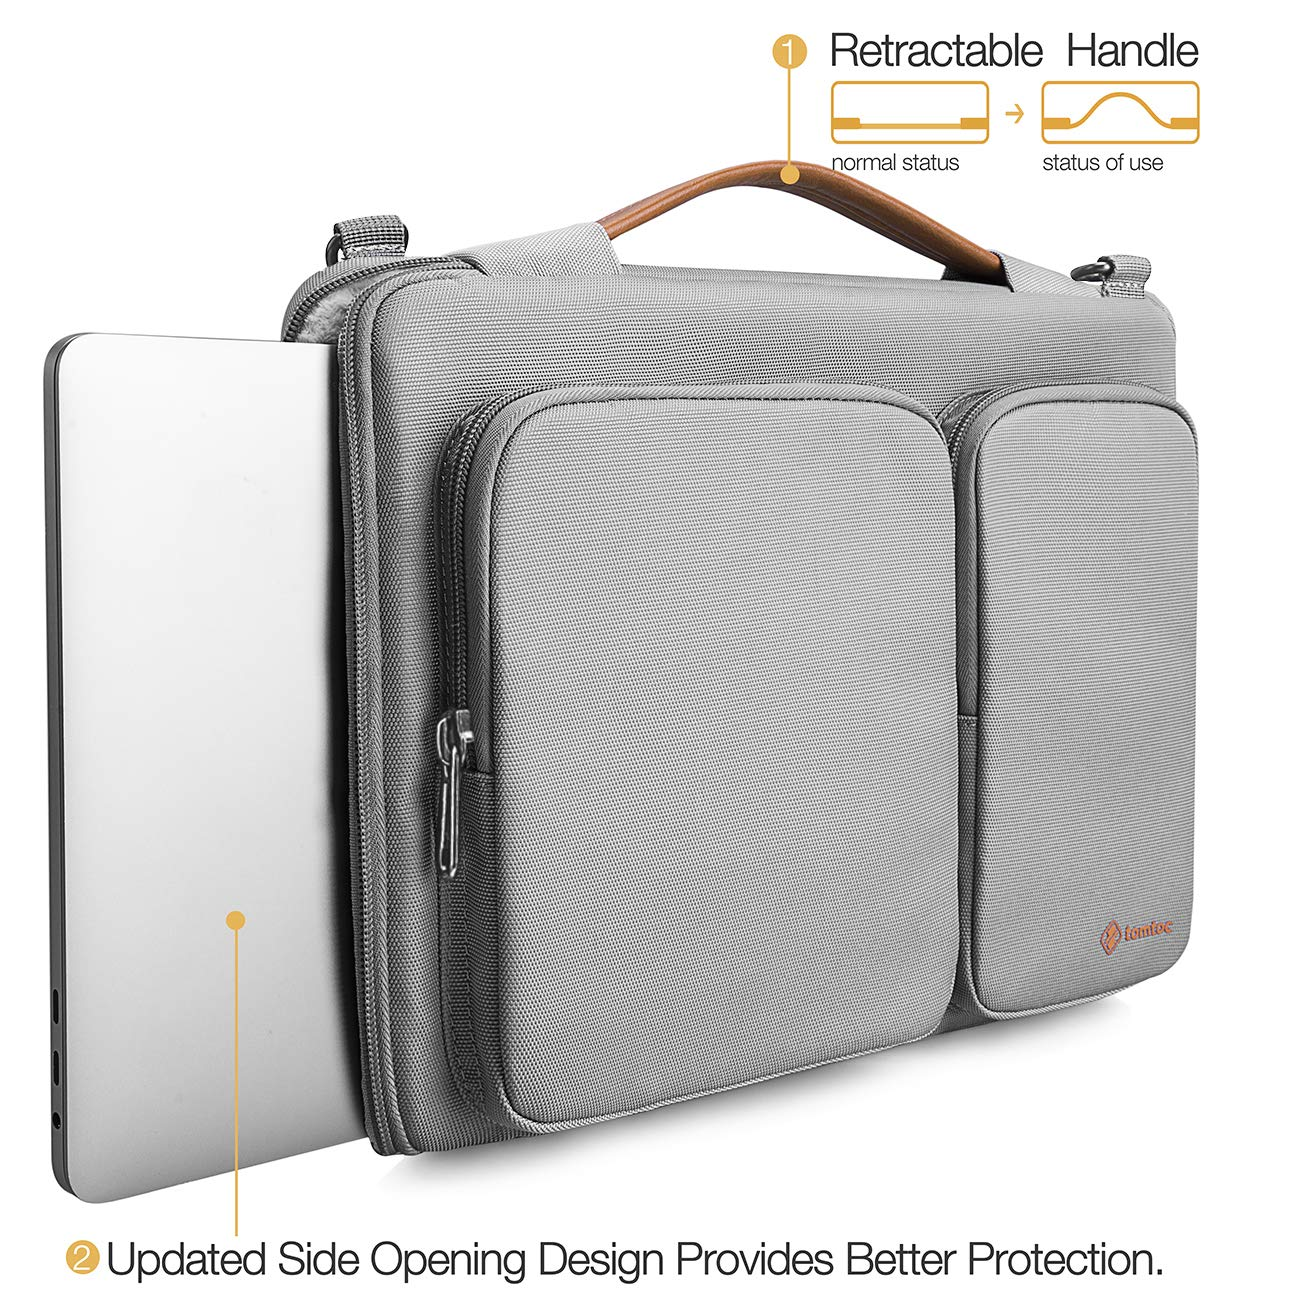 tomtoc Original 15.6 Inch Laptop Shoulder Bag with CornerArmor Patent /& Accessory Pocket 360/° Protective Sleeve Compatible with 15-15.6 Dell HP Acer Lenovo Chromebook Notebook